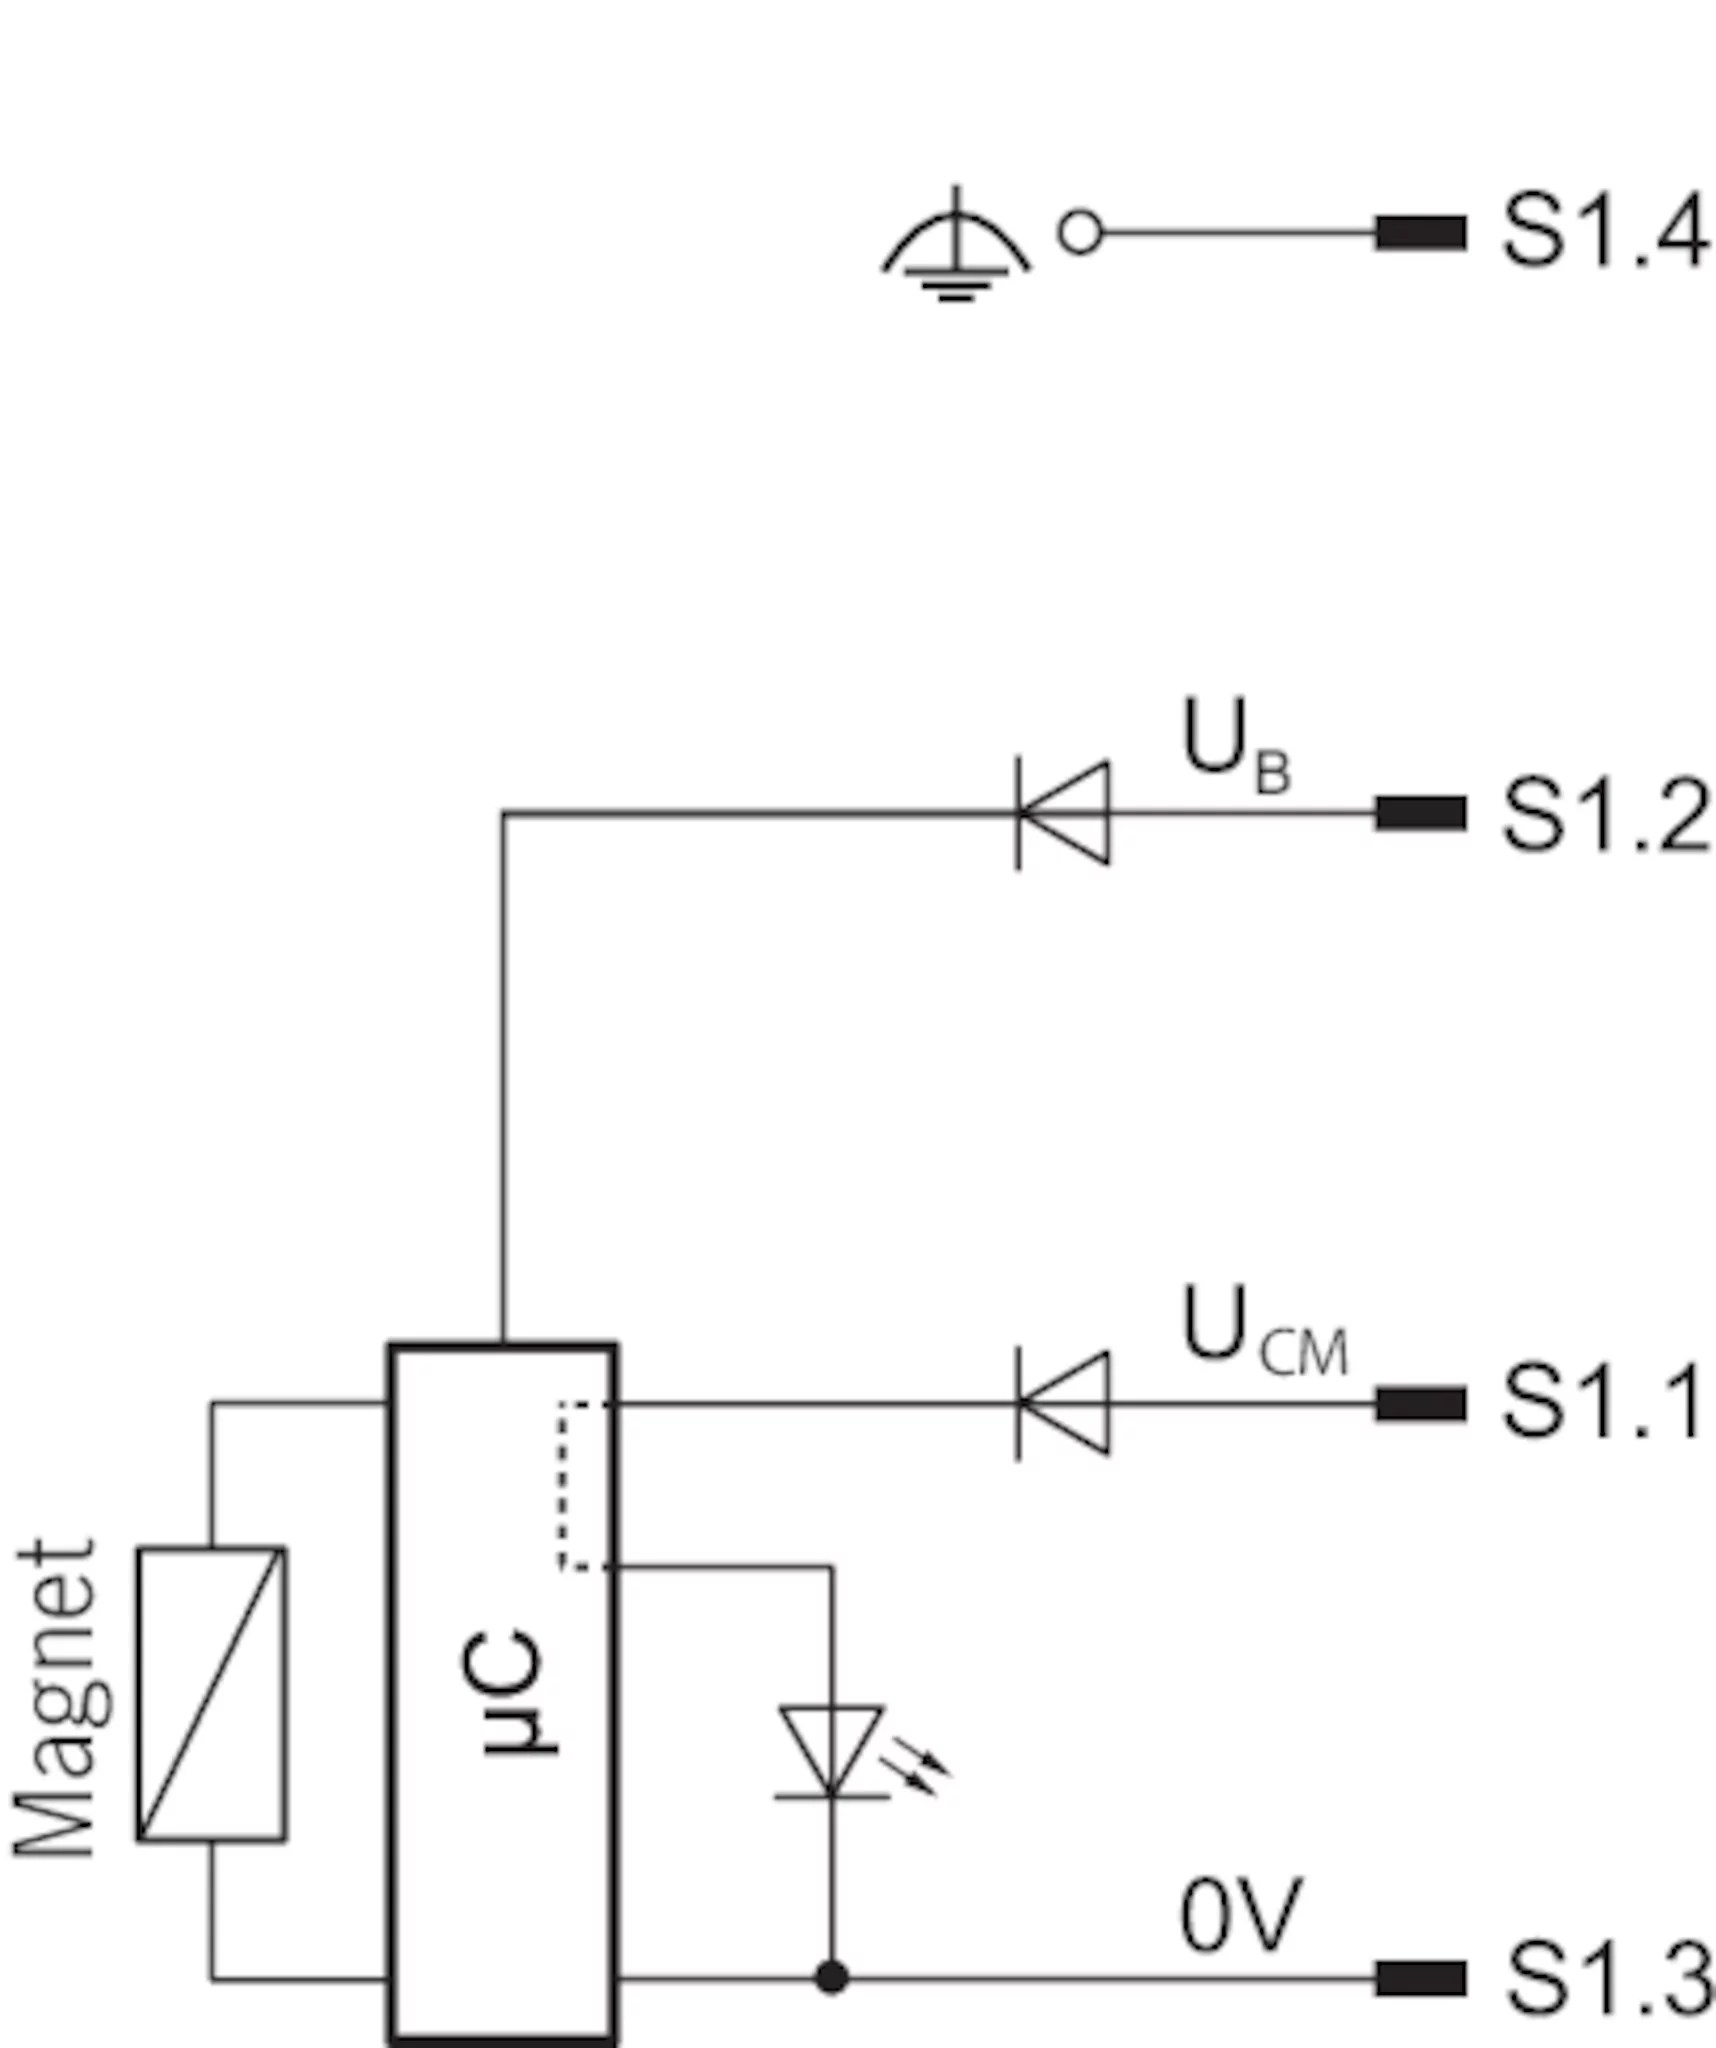 hight resolution of circuit diagram connection solenoid operating voltage plug s1 a free wheeling diode is already integrated into each cem